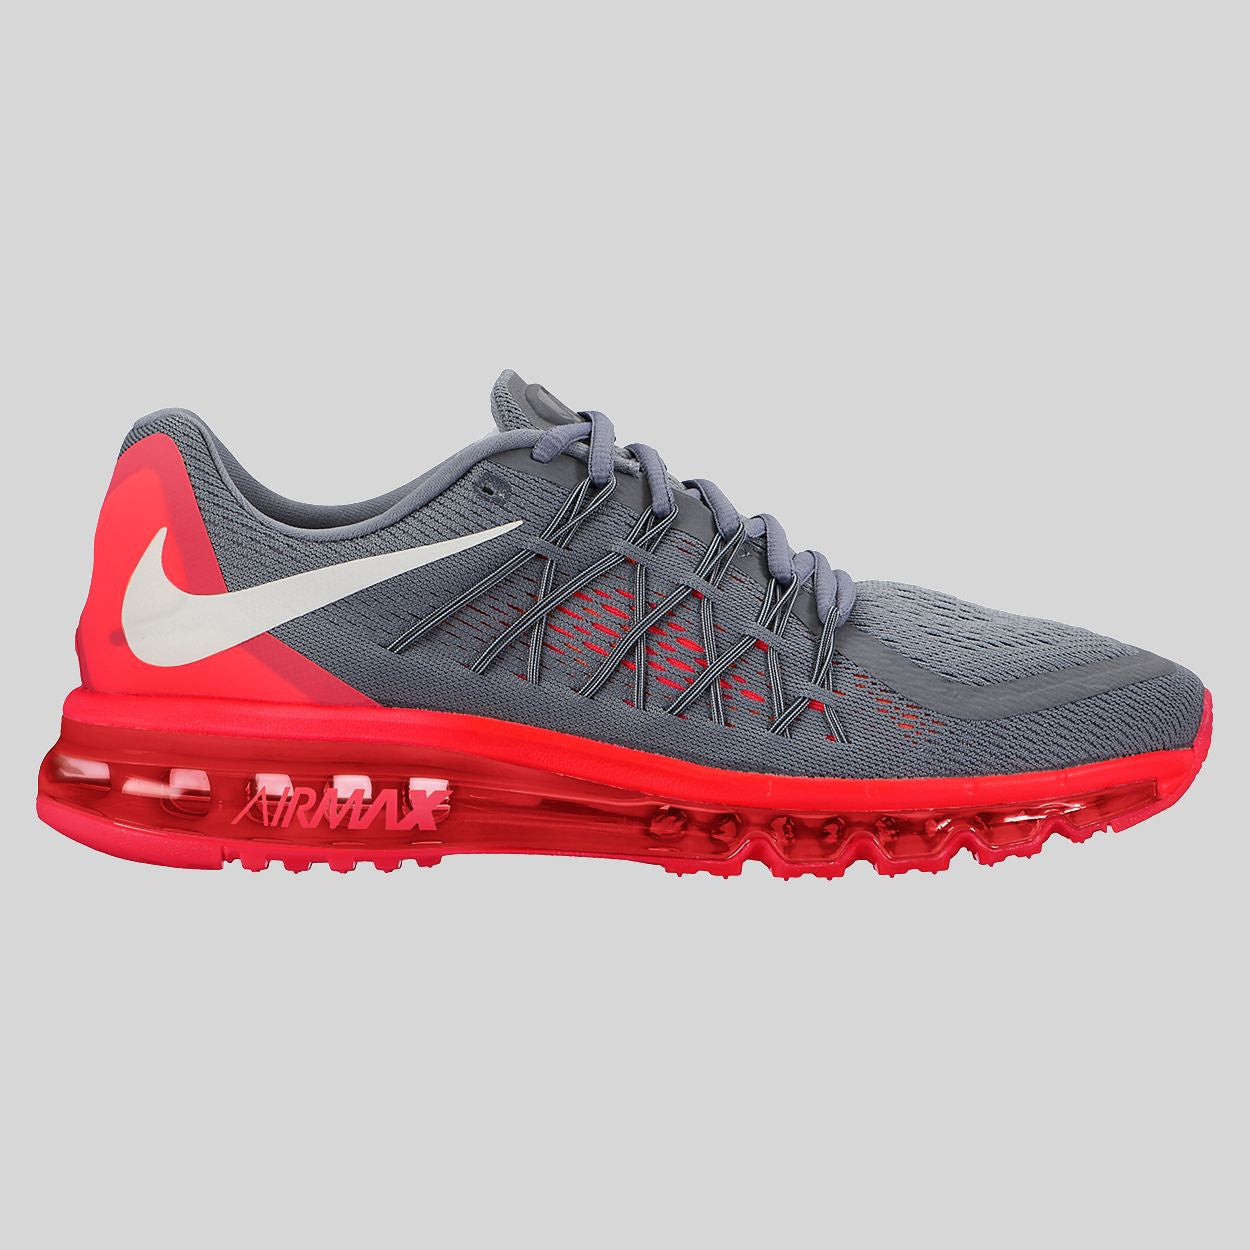 Nike Air Max 2015 Cool Grey White Bright Crimson (698902-018)